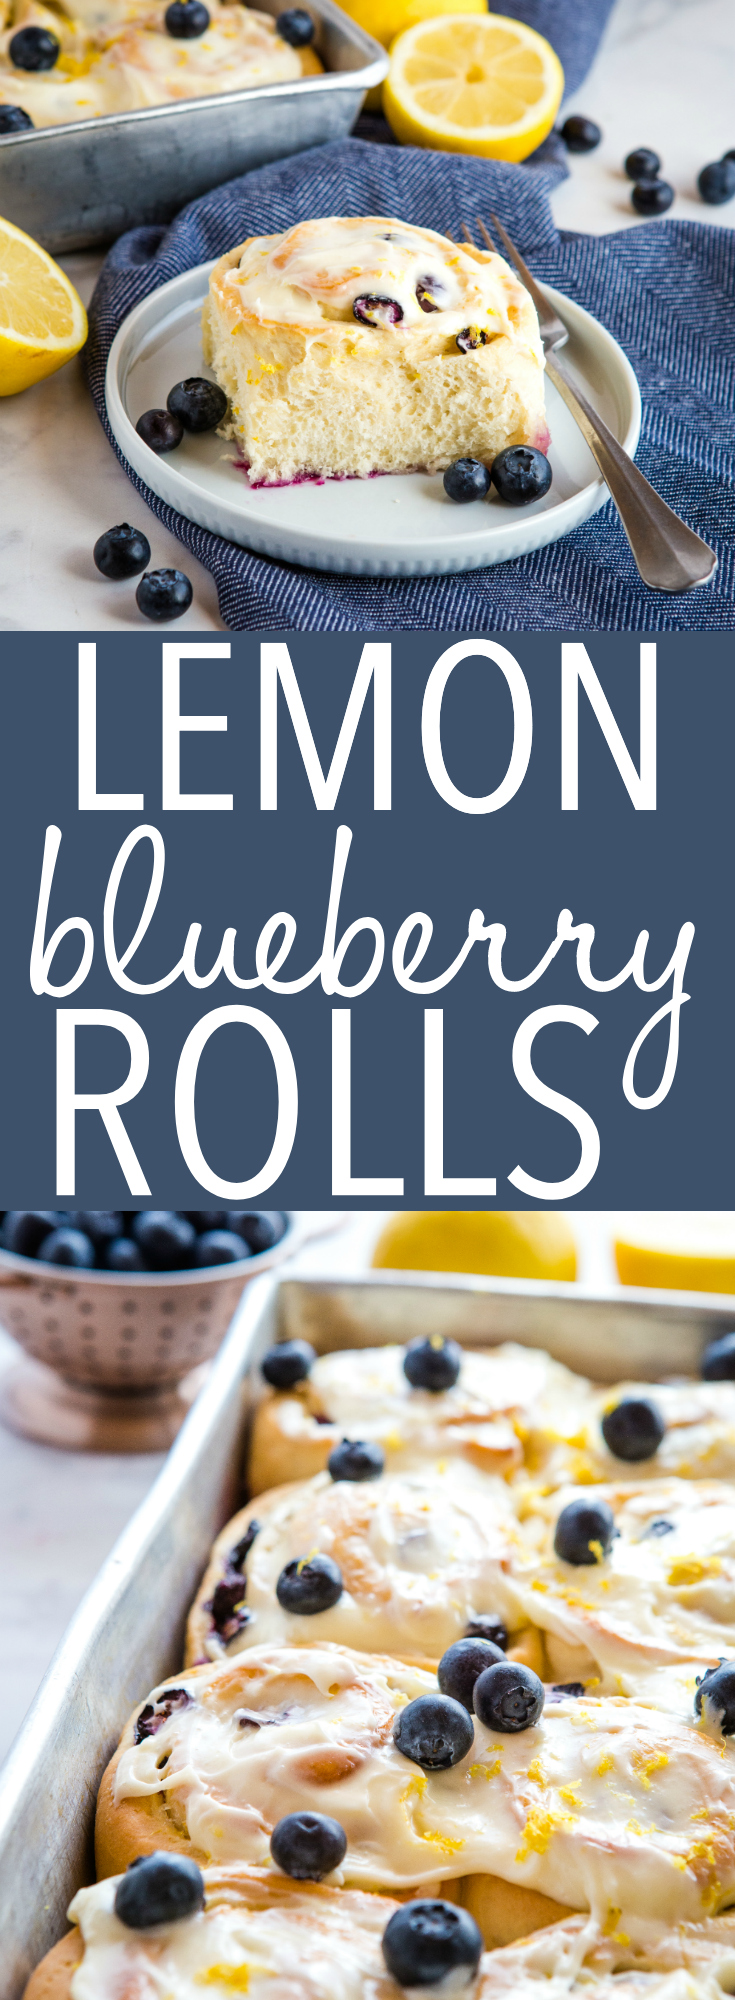 These Lemon Blueberry Sweet Rolls are the perfect summer breakfast or brunch featuring fresh blueberries and a sweet cream cheese frosting! Recipe from thebusybaker.ca! #sweet #rolls #breakfast #brunch #blueberries #blueberry #lemon #citrus #sweetbread #treat #baking #recipe via @busybakerblog